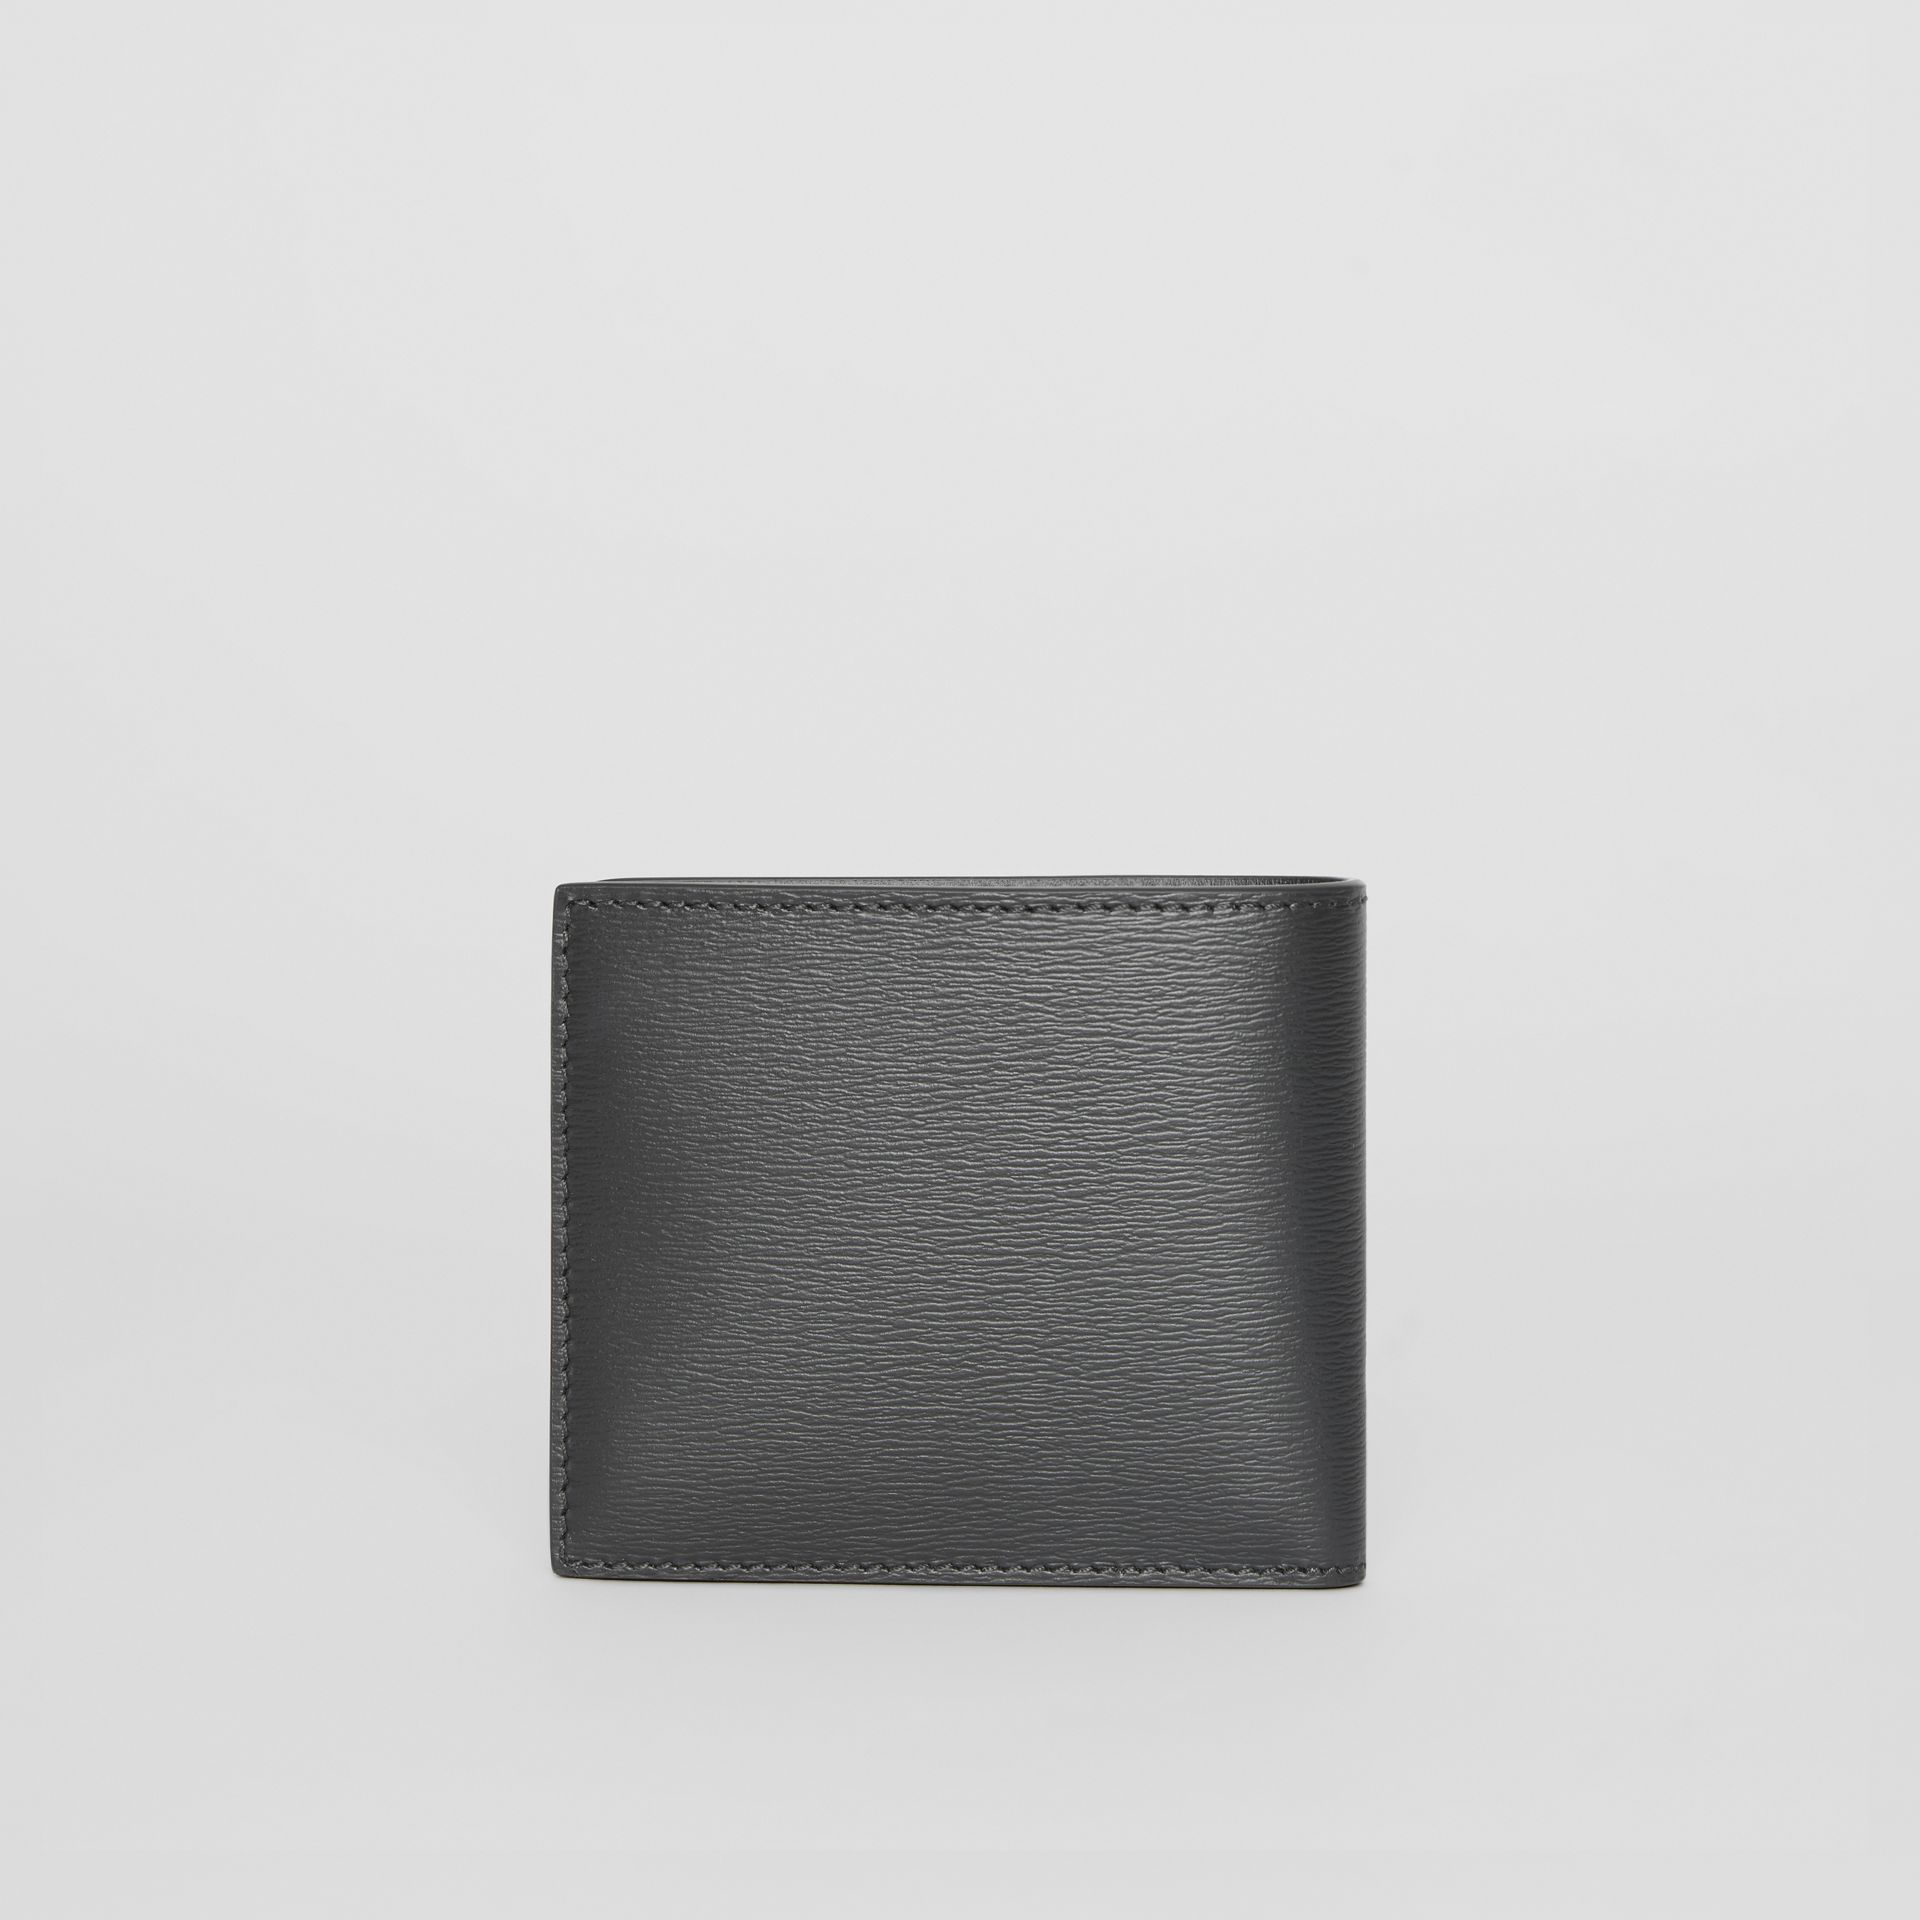 EKD London Leather Bifold Wallet with ID Card Case in Black - Men | Burberry Australia - gallery image 5